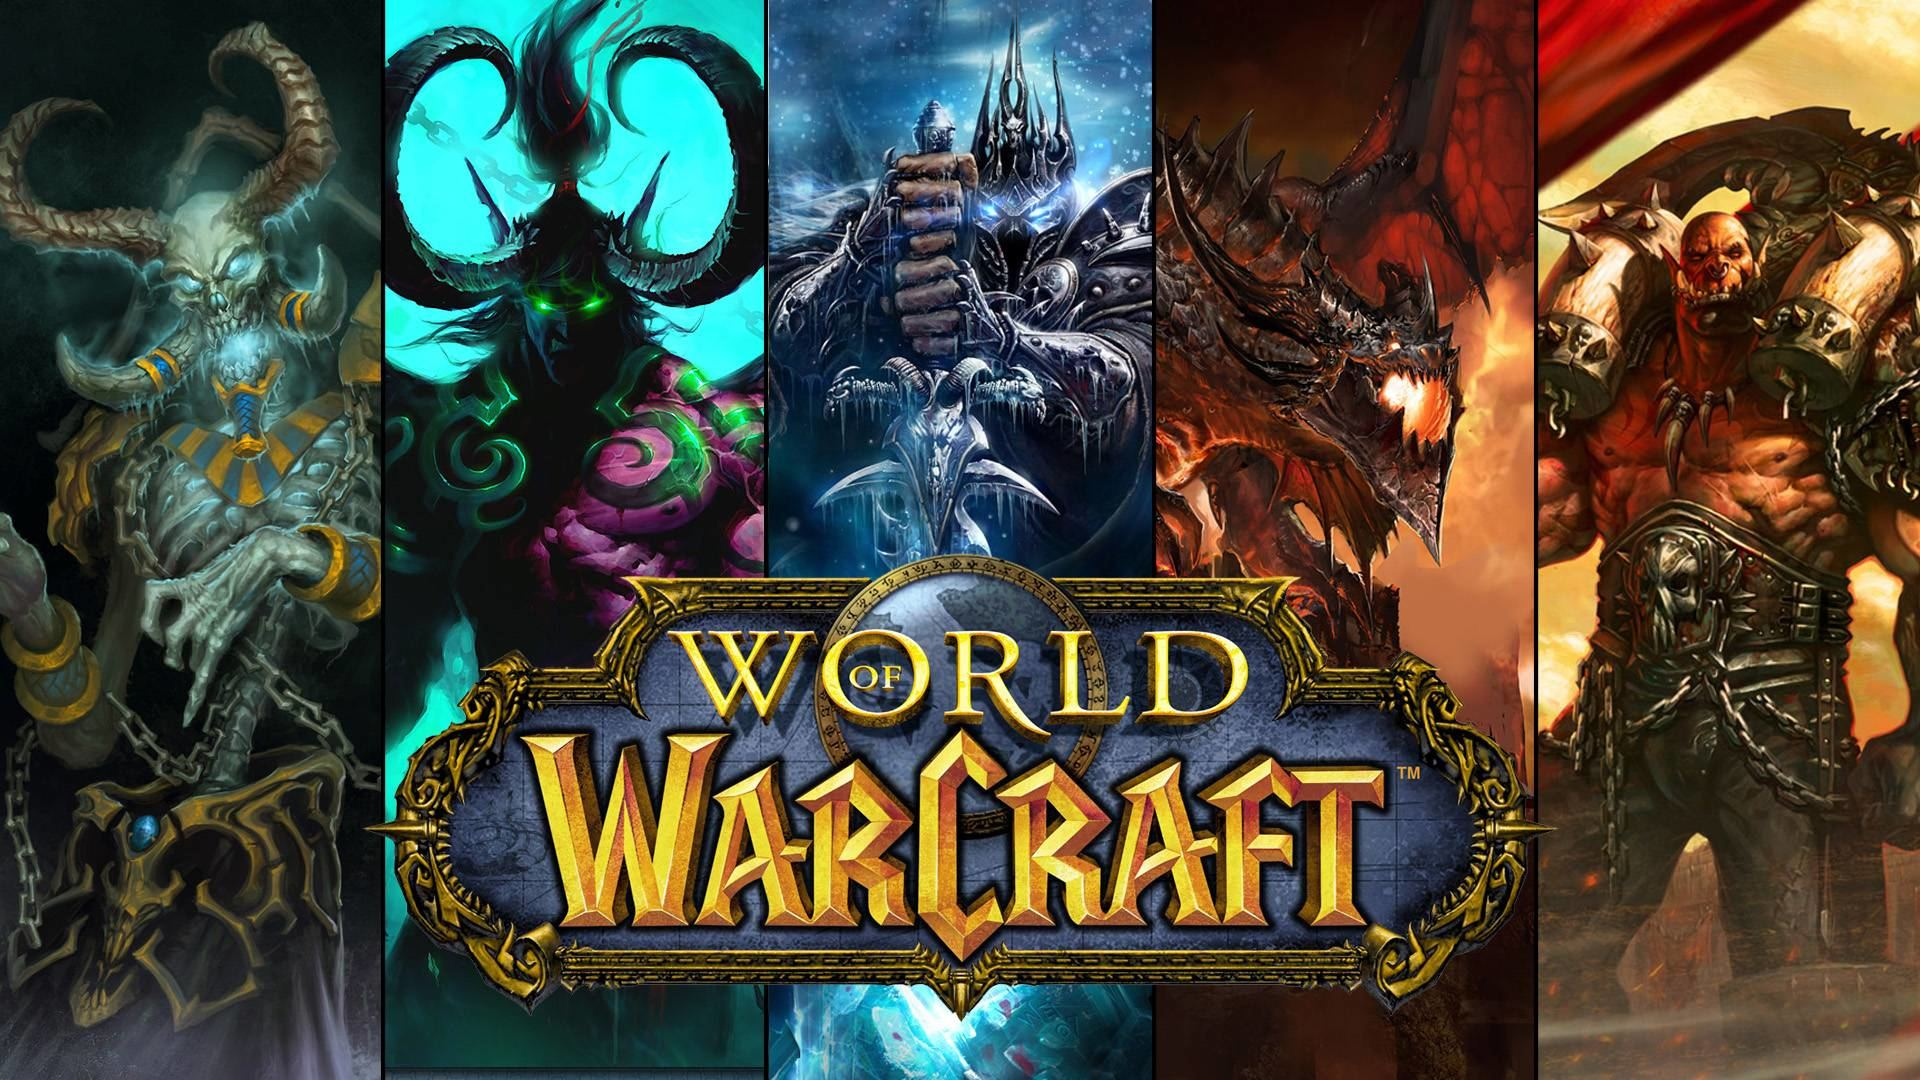 world of warcraft characters and logo